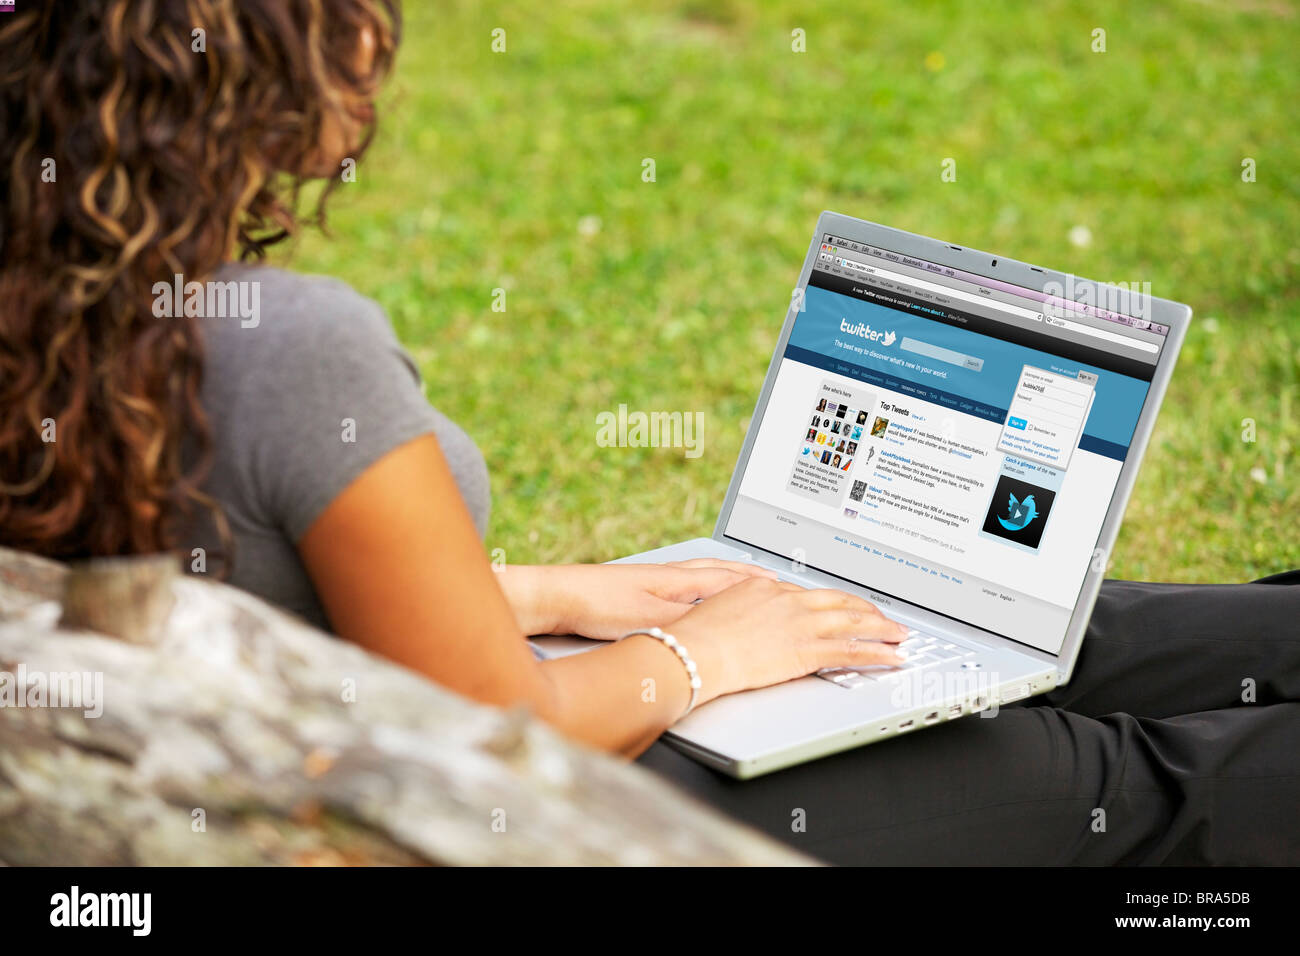 Young woman signing in on her Twitter page online on a laptop alone at the park - Stock Image